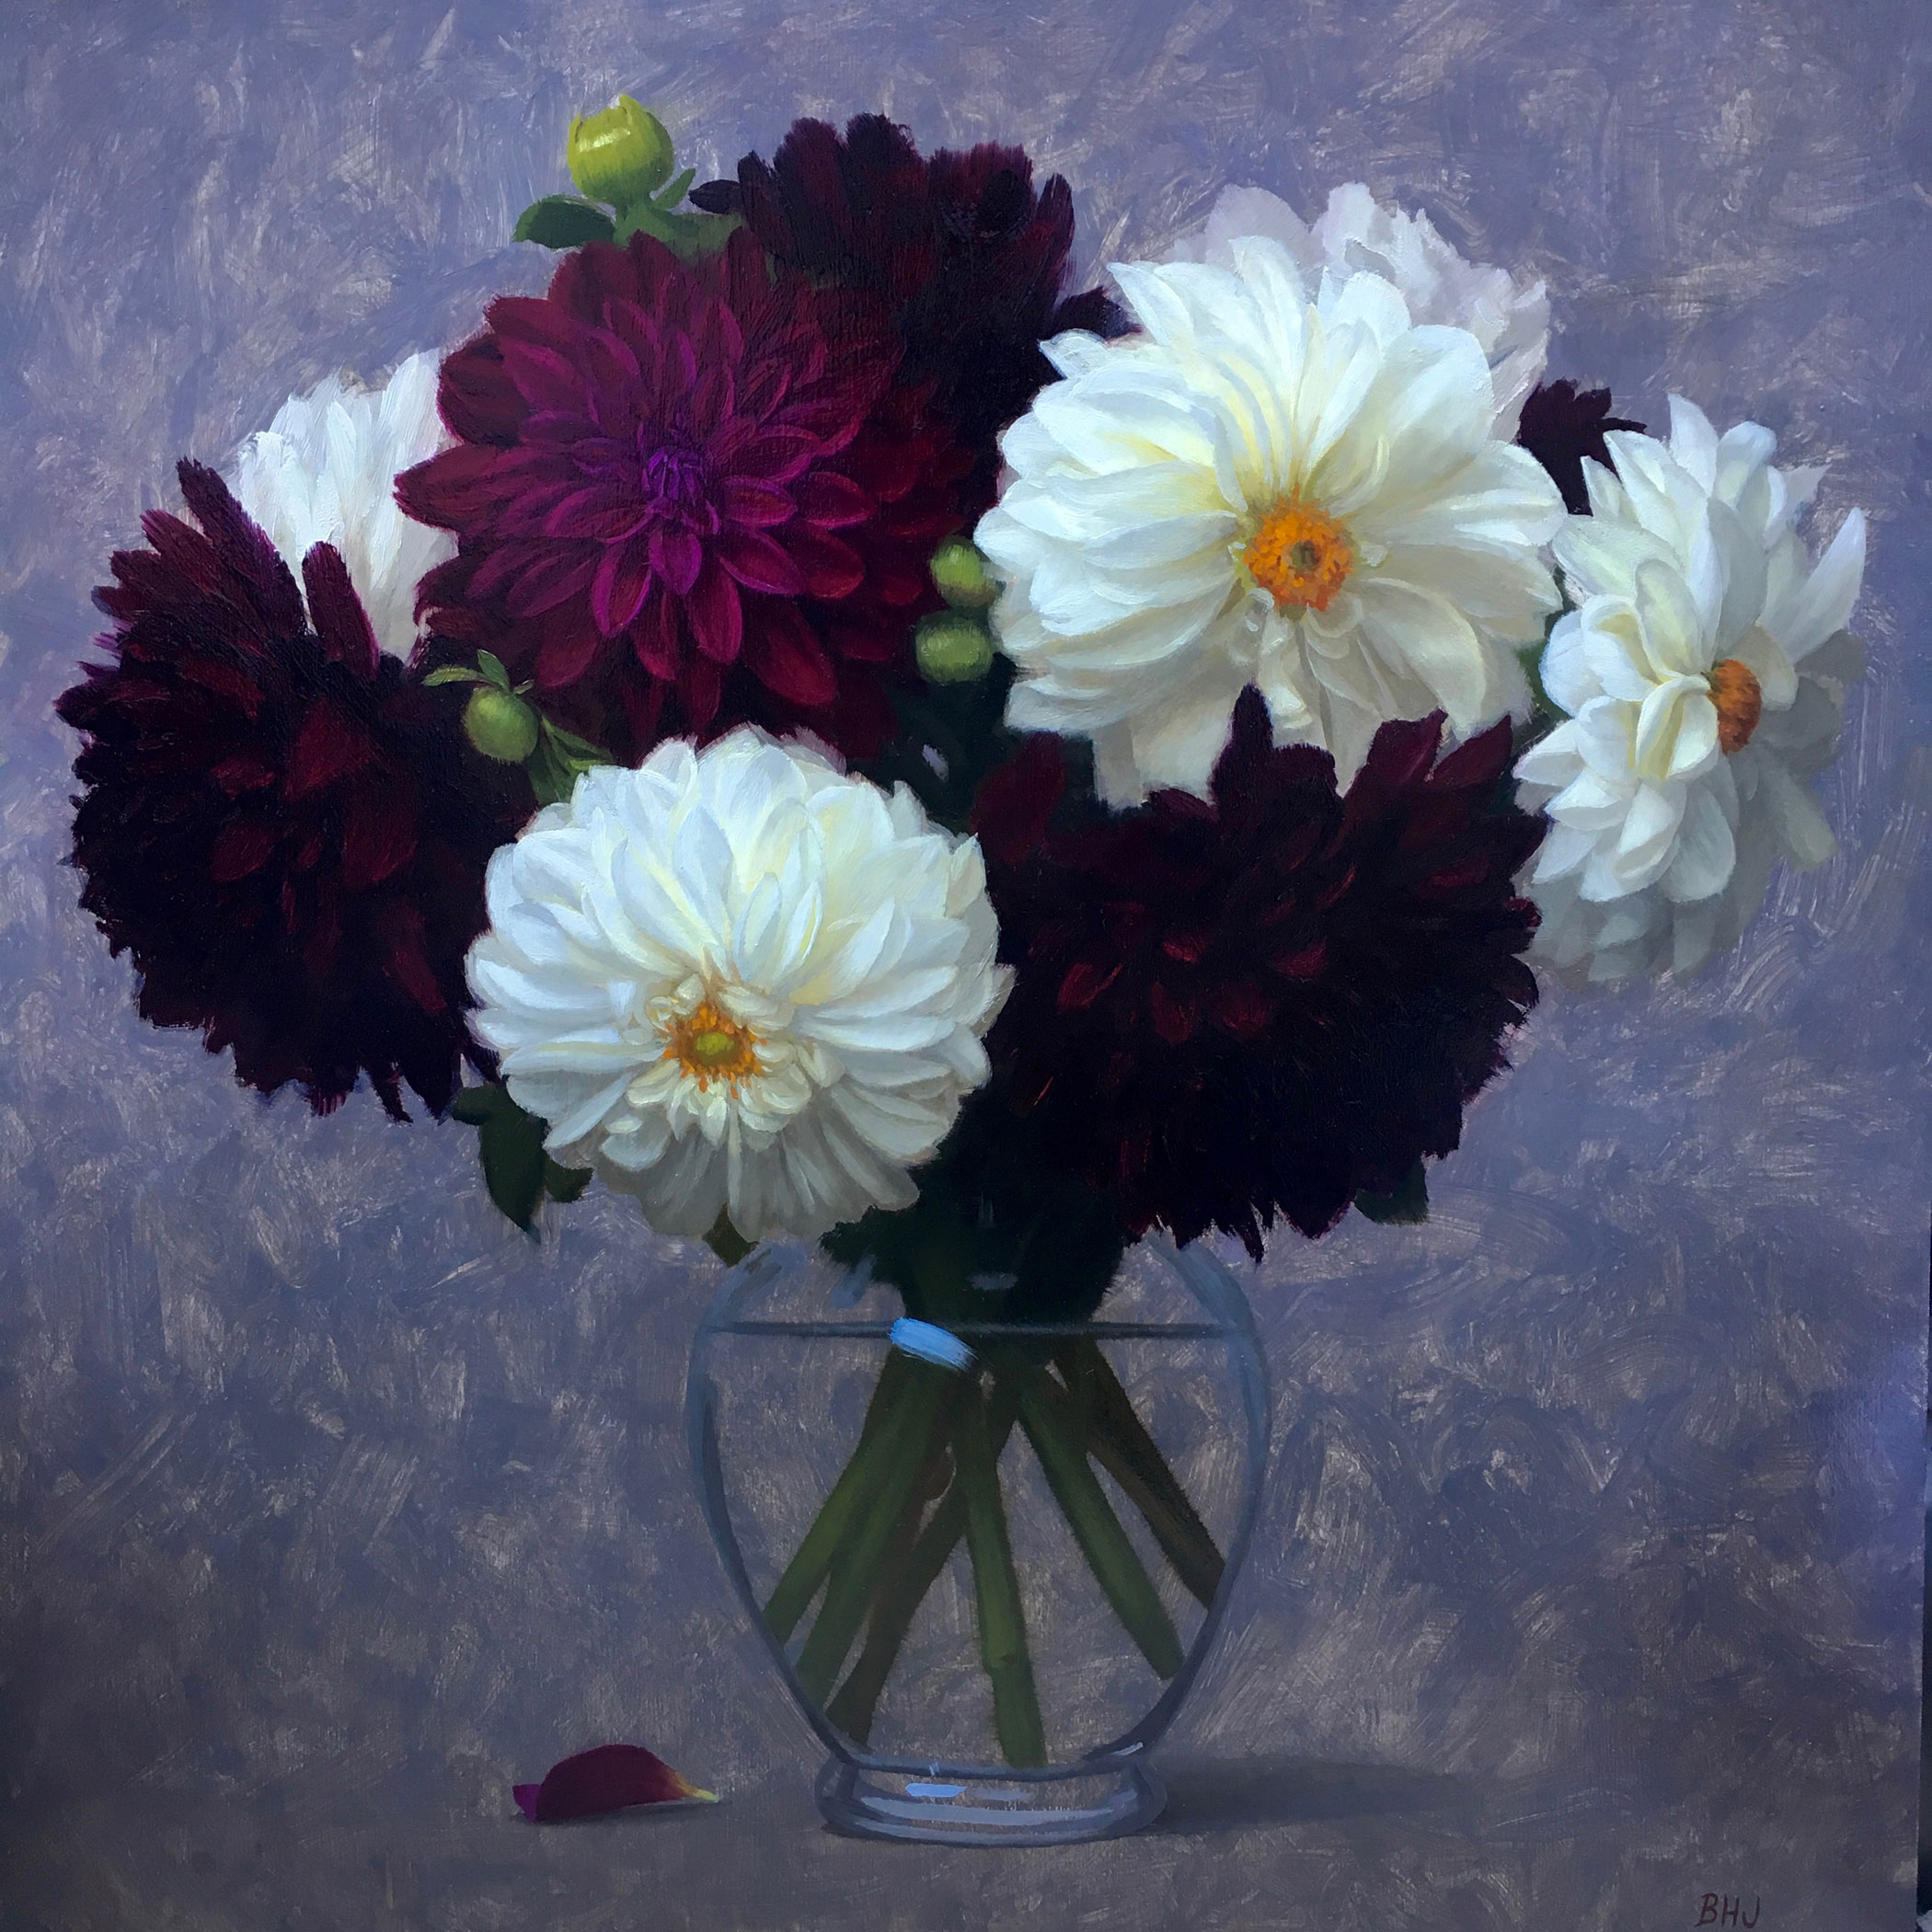 Johnston,-Brendan,-Low-Res-Image,-Crimson-and-White-Dahlias-16__x16_,-Oil-on-Panel,-$2,800